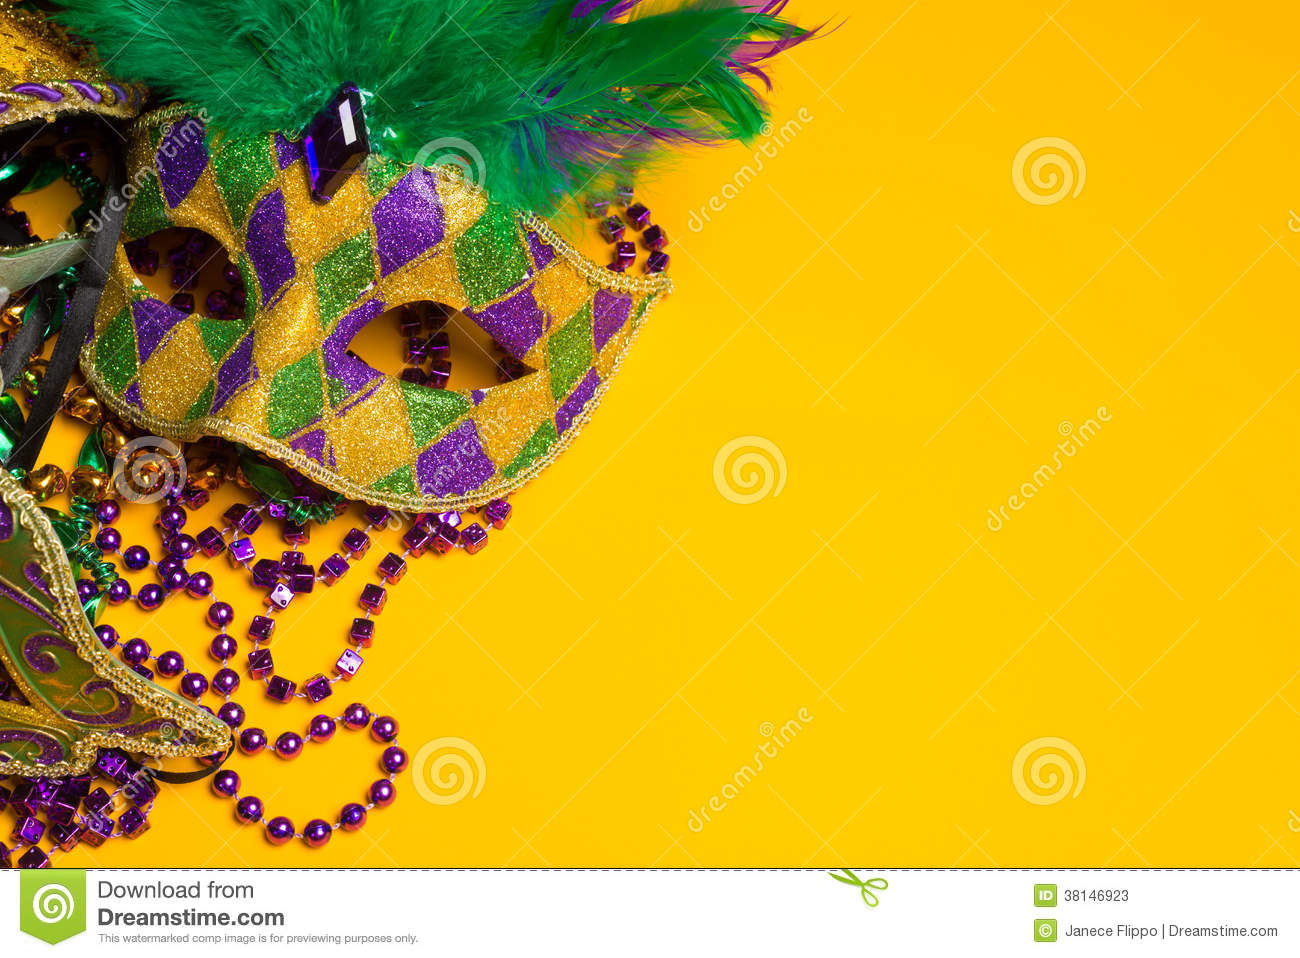 Colorful group of Mardi Gras or venetian mask or costumes on a y